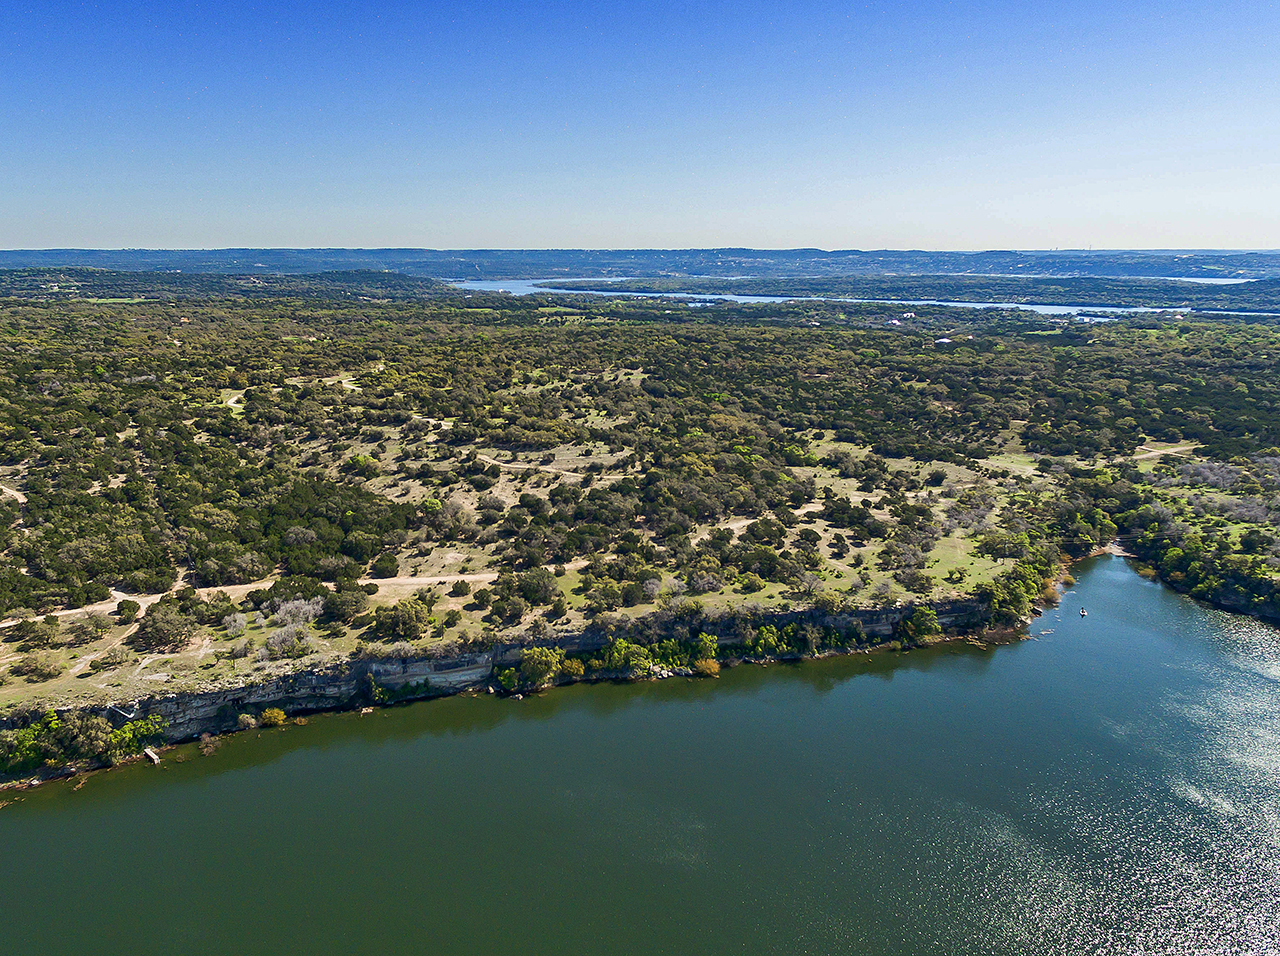 Fazenda / Rancho / Plantação para Venda às Travis Peak Bluffs - Lake Travis 171 Acres Travis Peak- Lake Travis Marble Falls, Texas, 78654 Estados Unidos